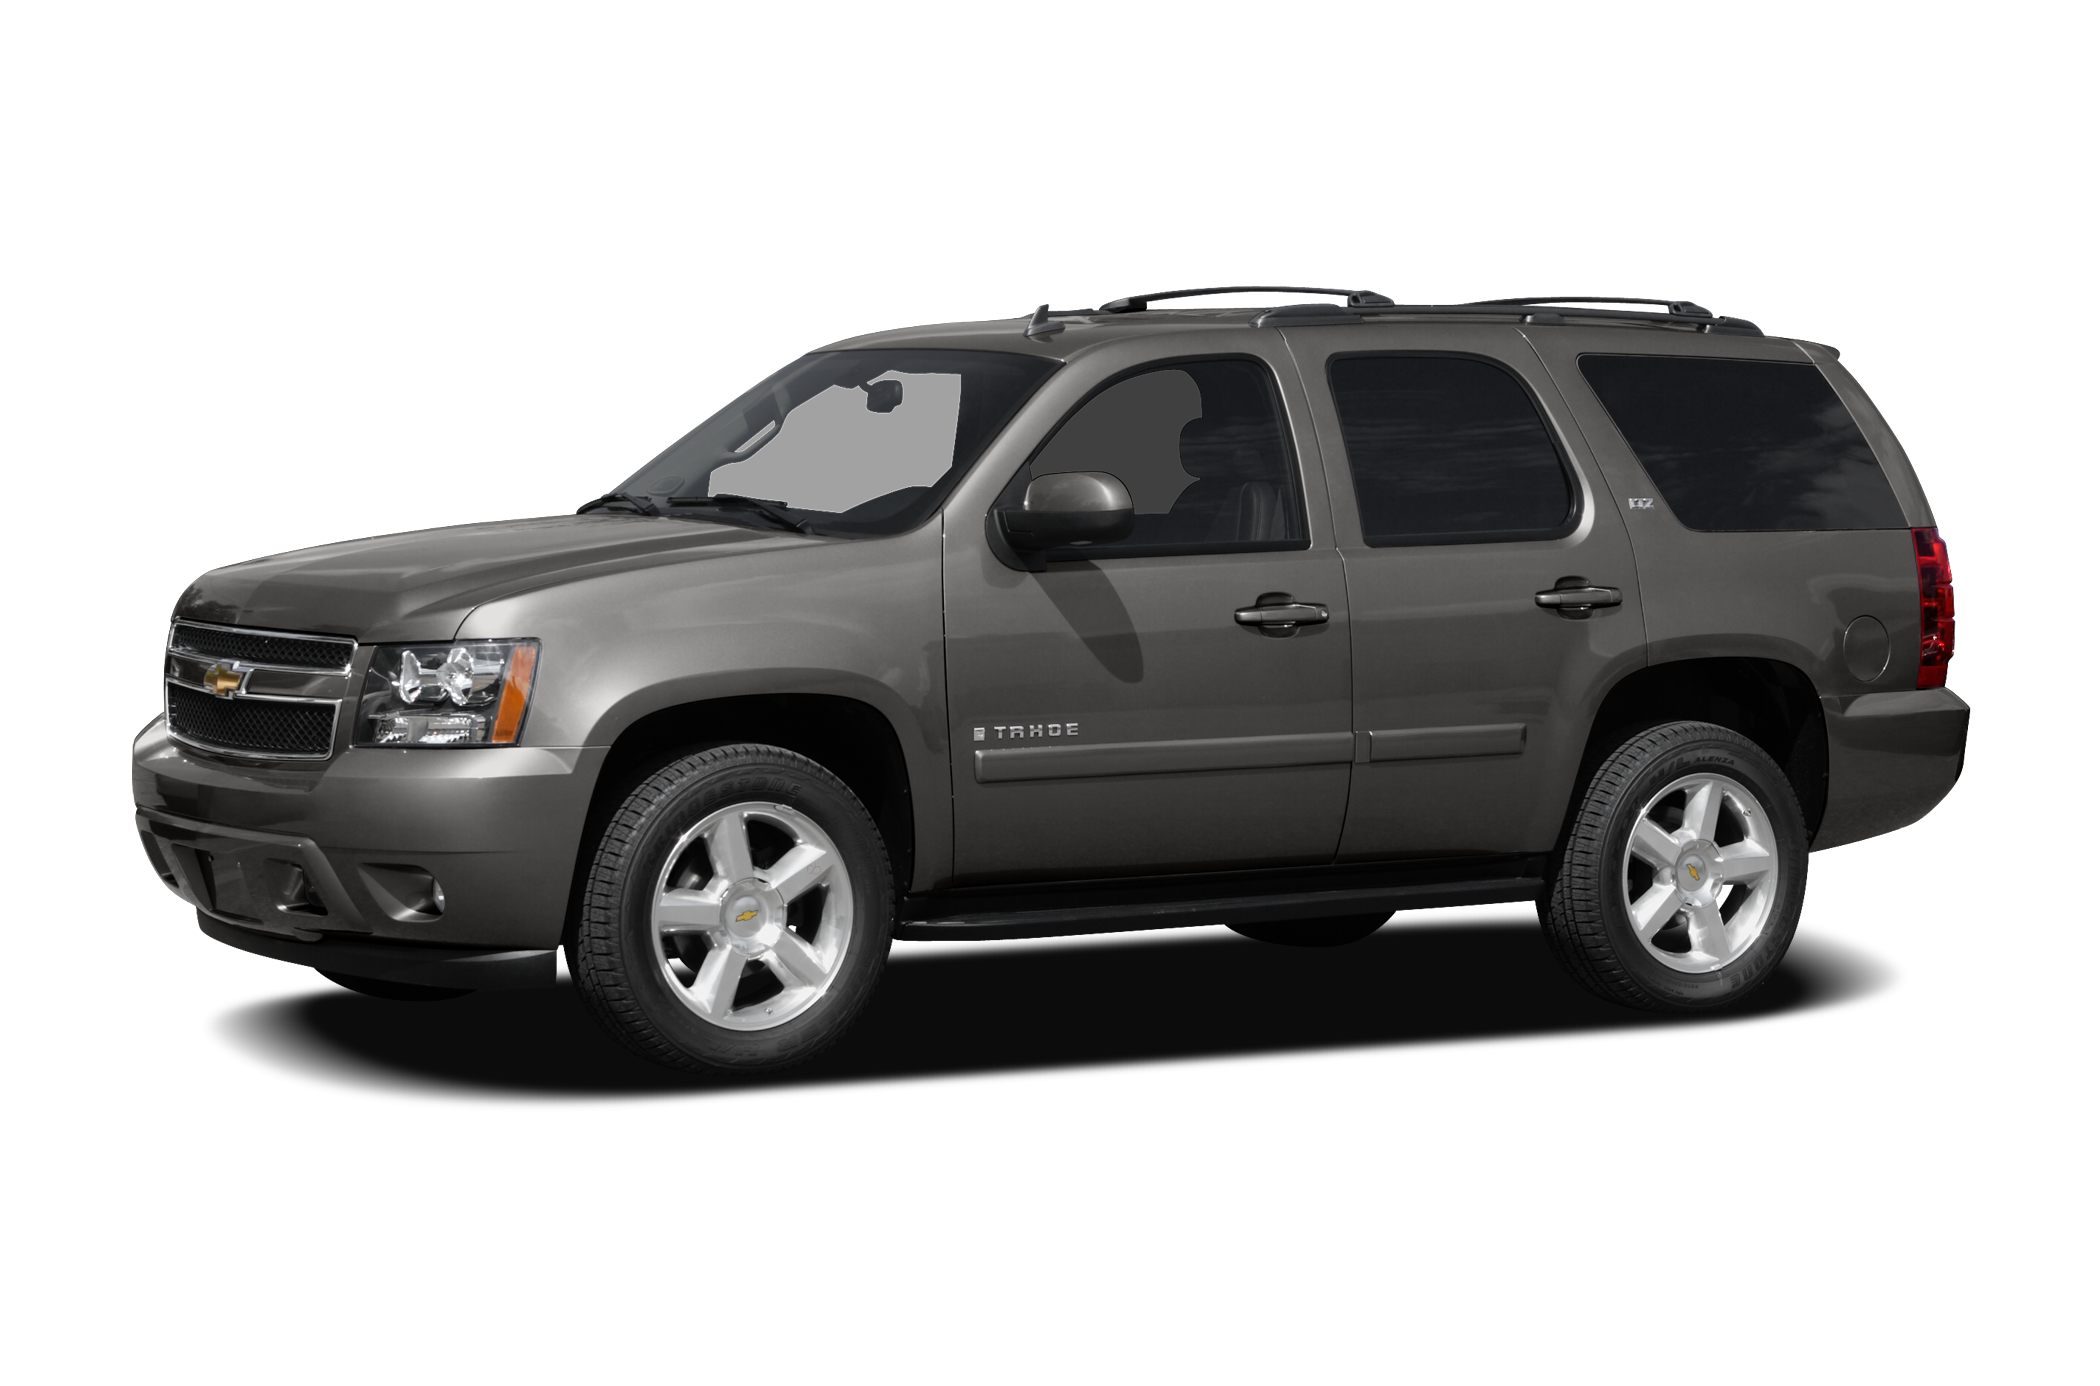 2007 Chevrolet Tahoe LT SUV for sale in Los Angeles for $14,999 with 119,249 miles.